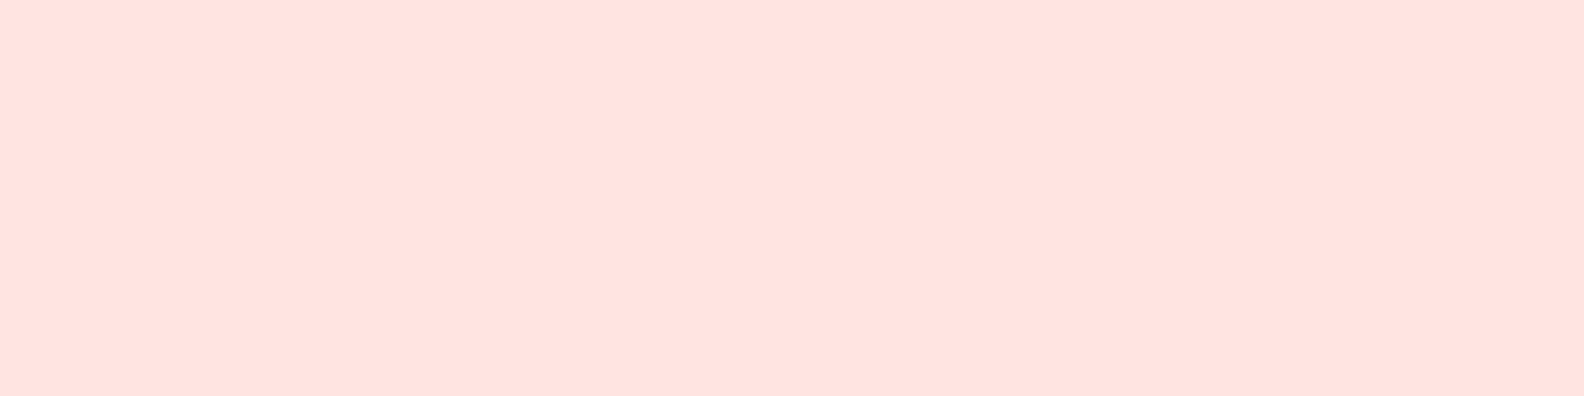 1584x396 Misty Rose Solid Color Background